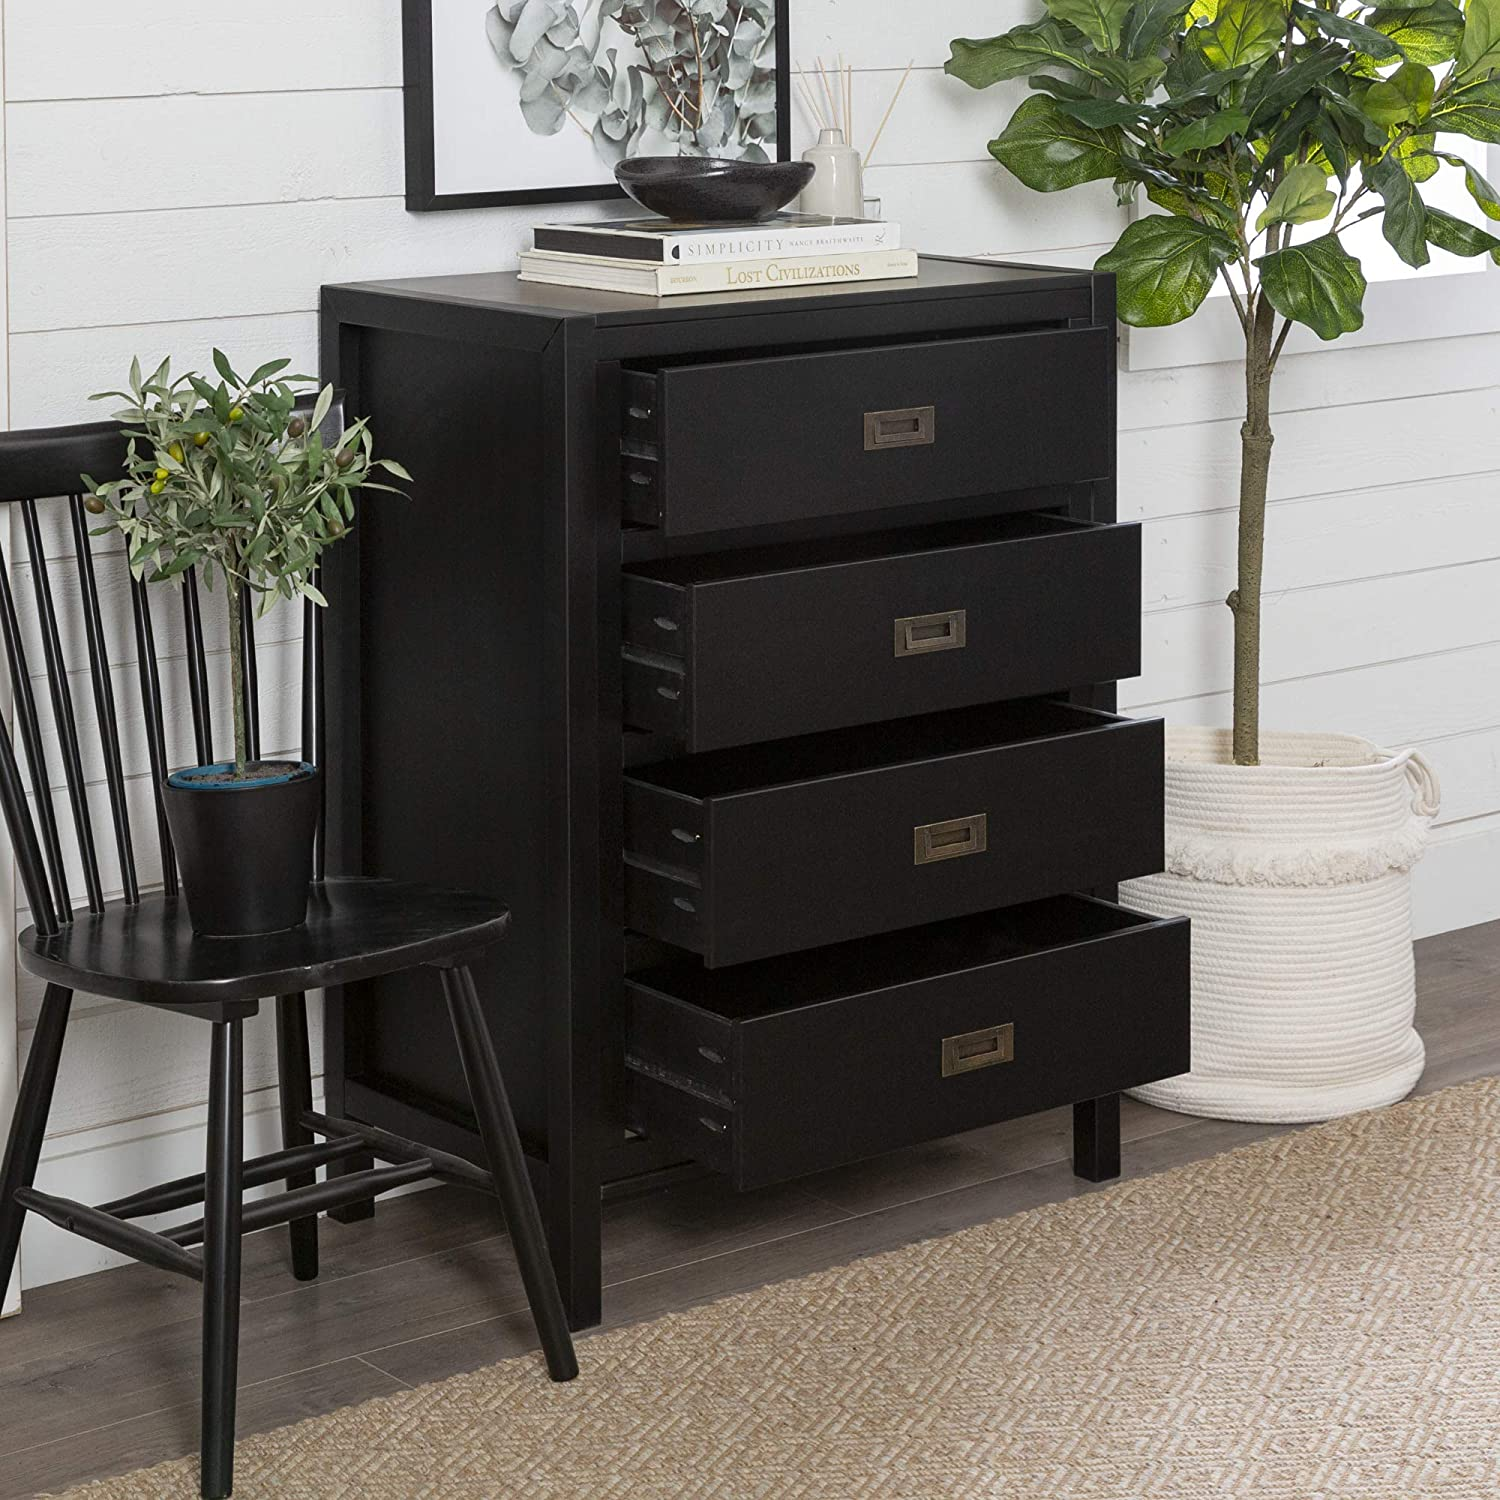 40 Classic Solid Wood 4 Drawer Chest Black Kitchen Dining